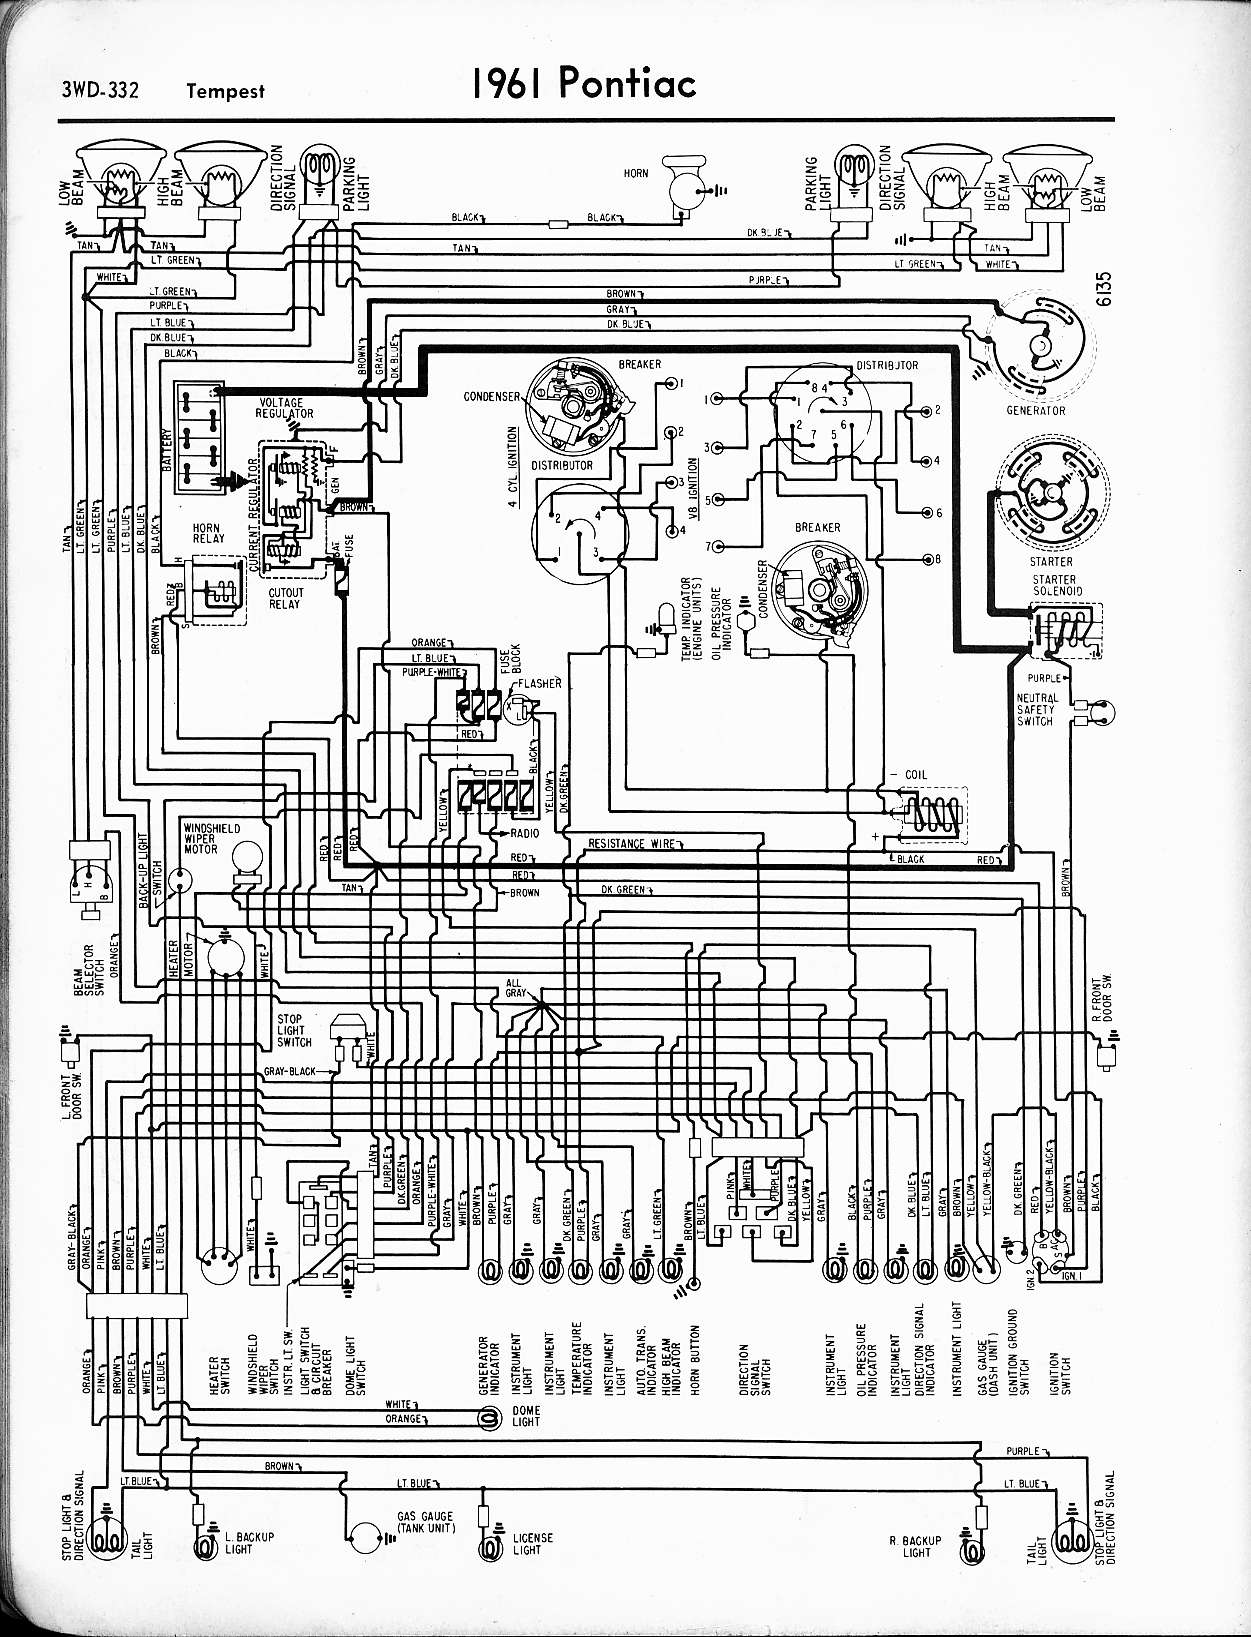 wallace racing wiring diagrams on Trans AM Tach Wiring Diagram for 77 pontiac firebird wiring diagram #4 at 1979 Chevy Truck Wiring Diagram